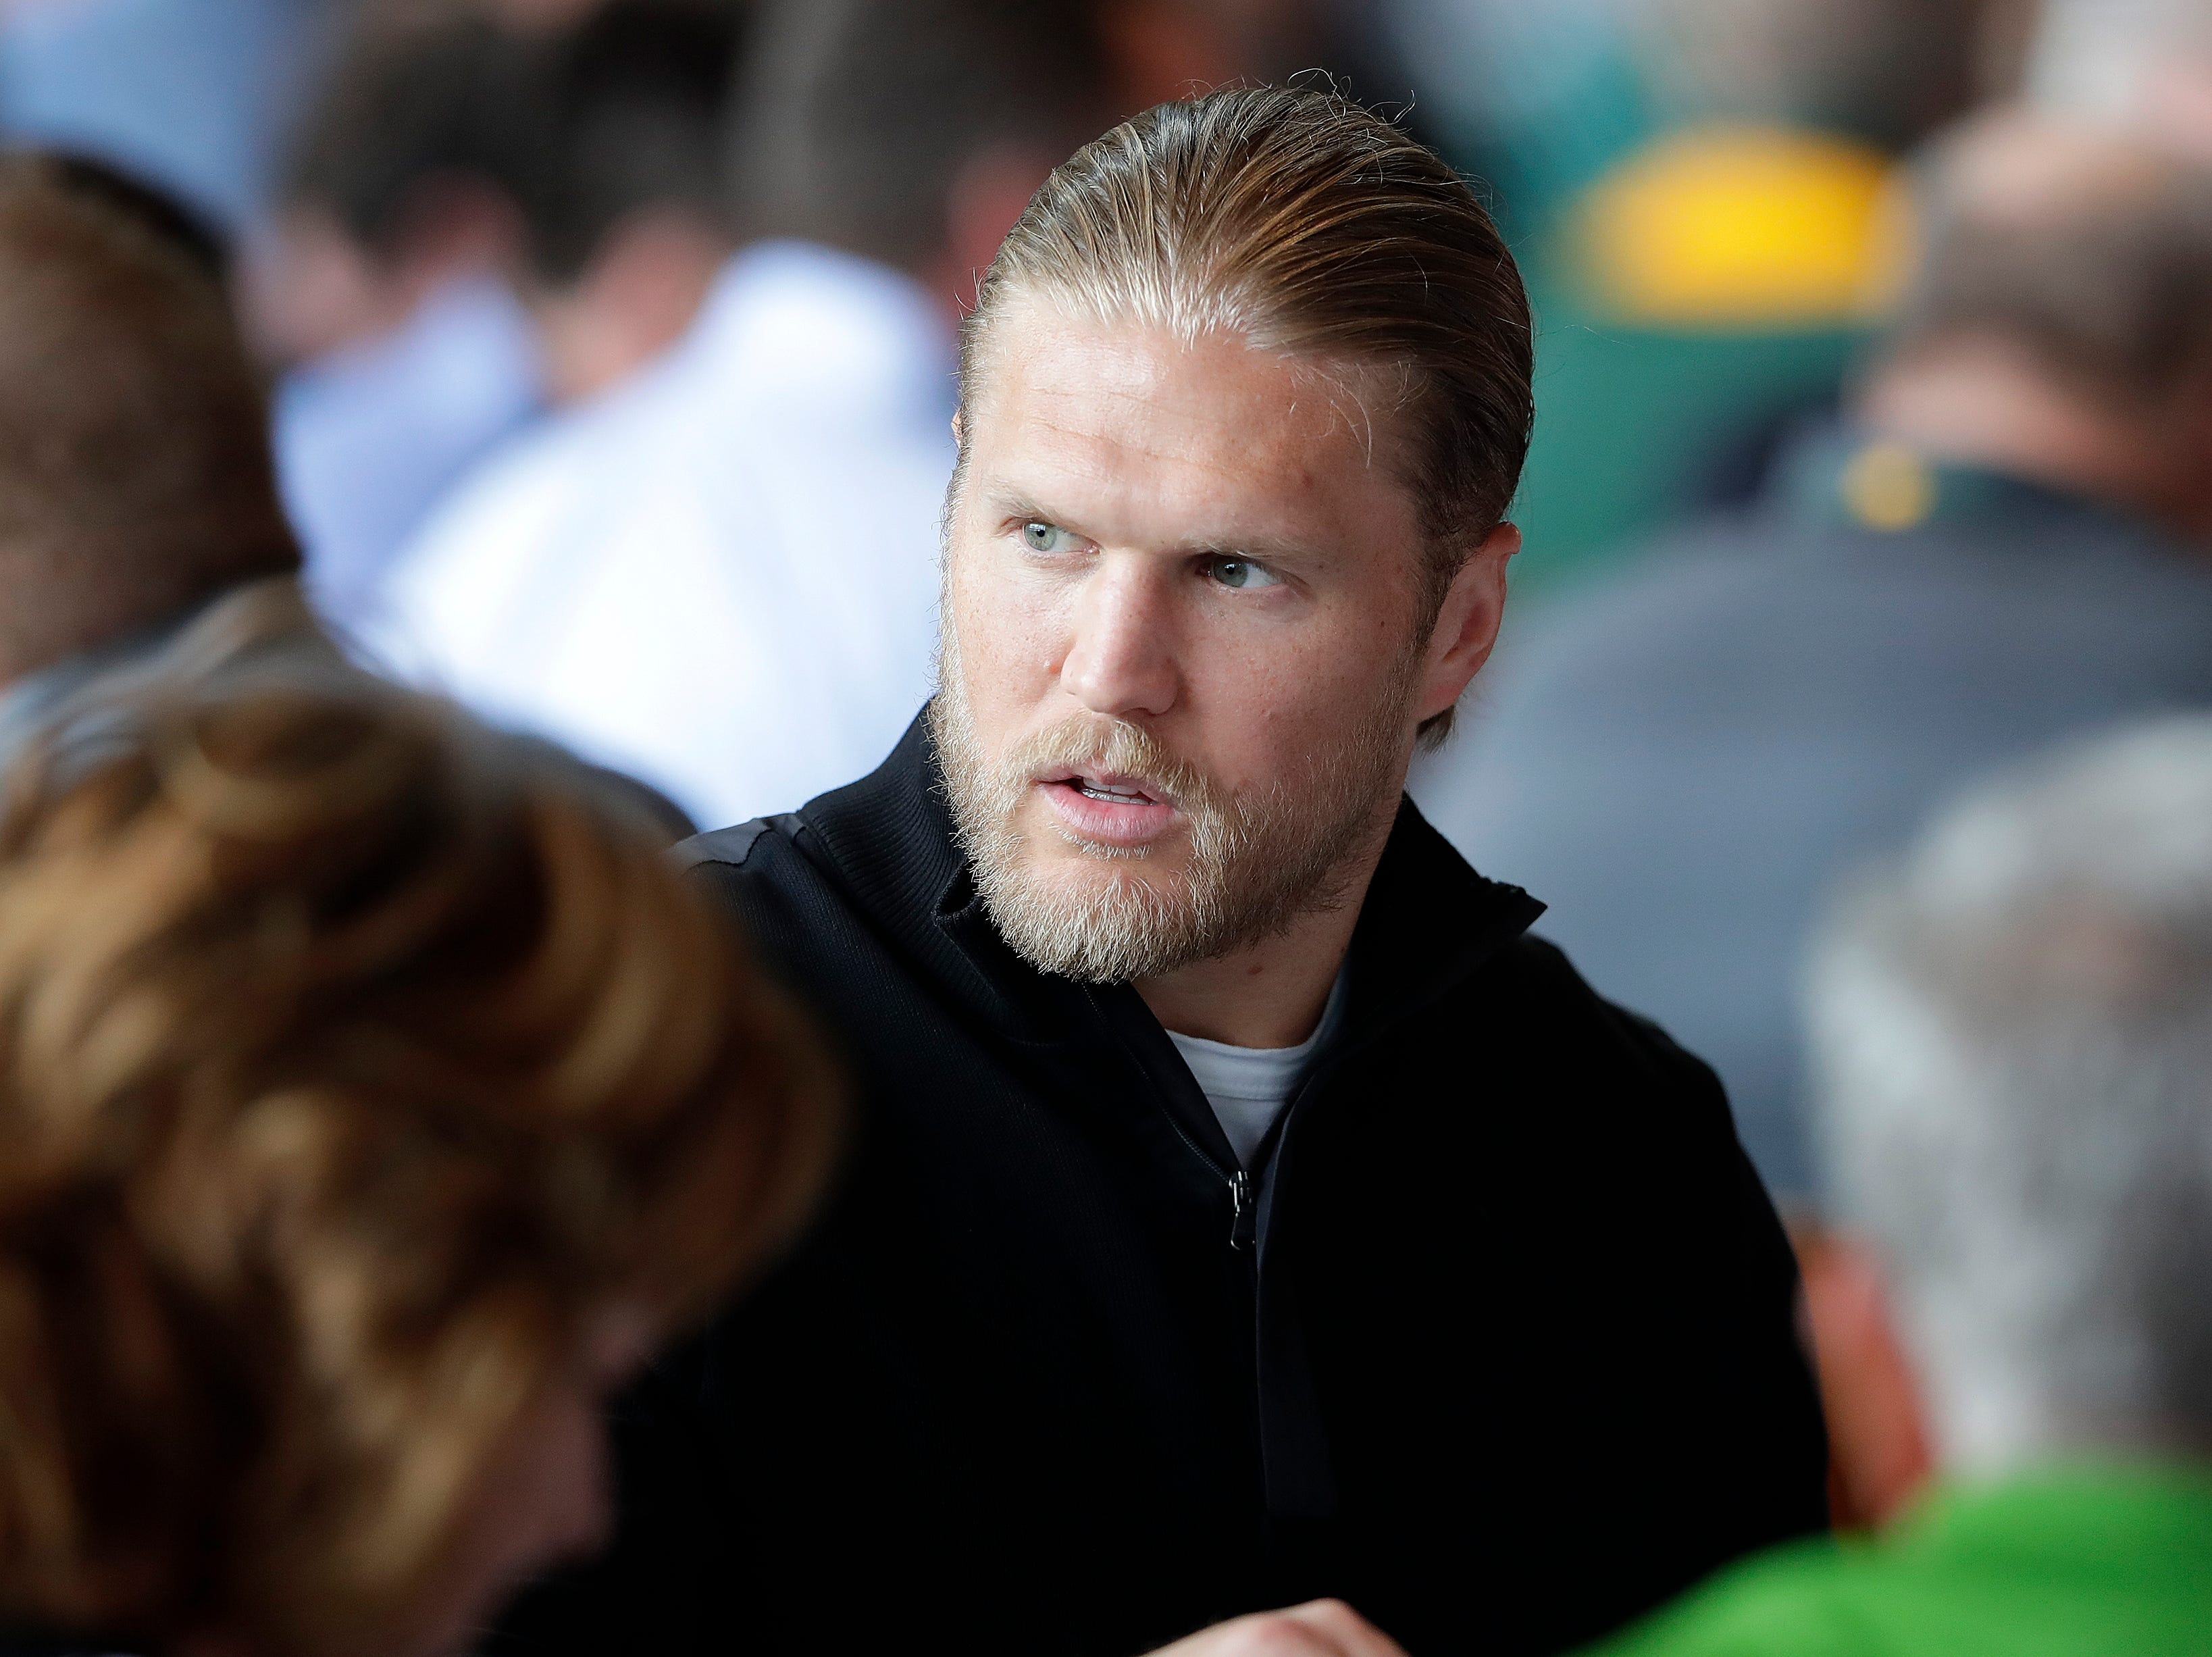 Green Bay Packers linebacker Clay Matthews (52) talks with tablemates during the Green Bay Chamber of Commerce Welcome Back Packers Luncheon at Lambeau Field Wednesday, August 29, 2018 in Green Bay, Wis.